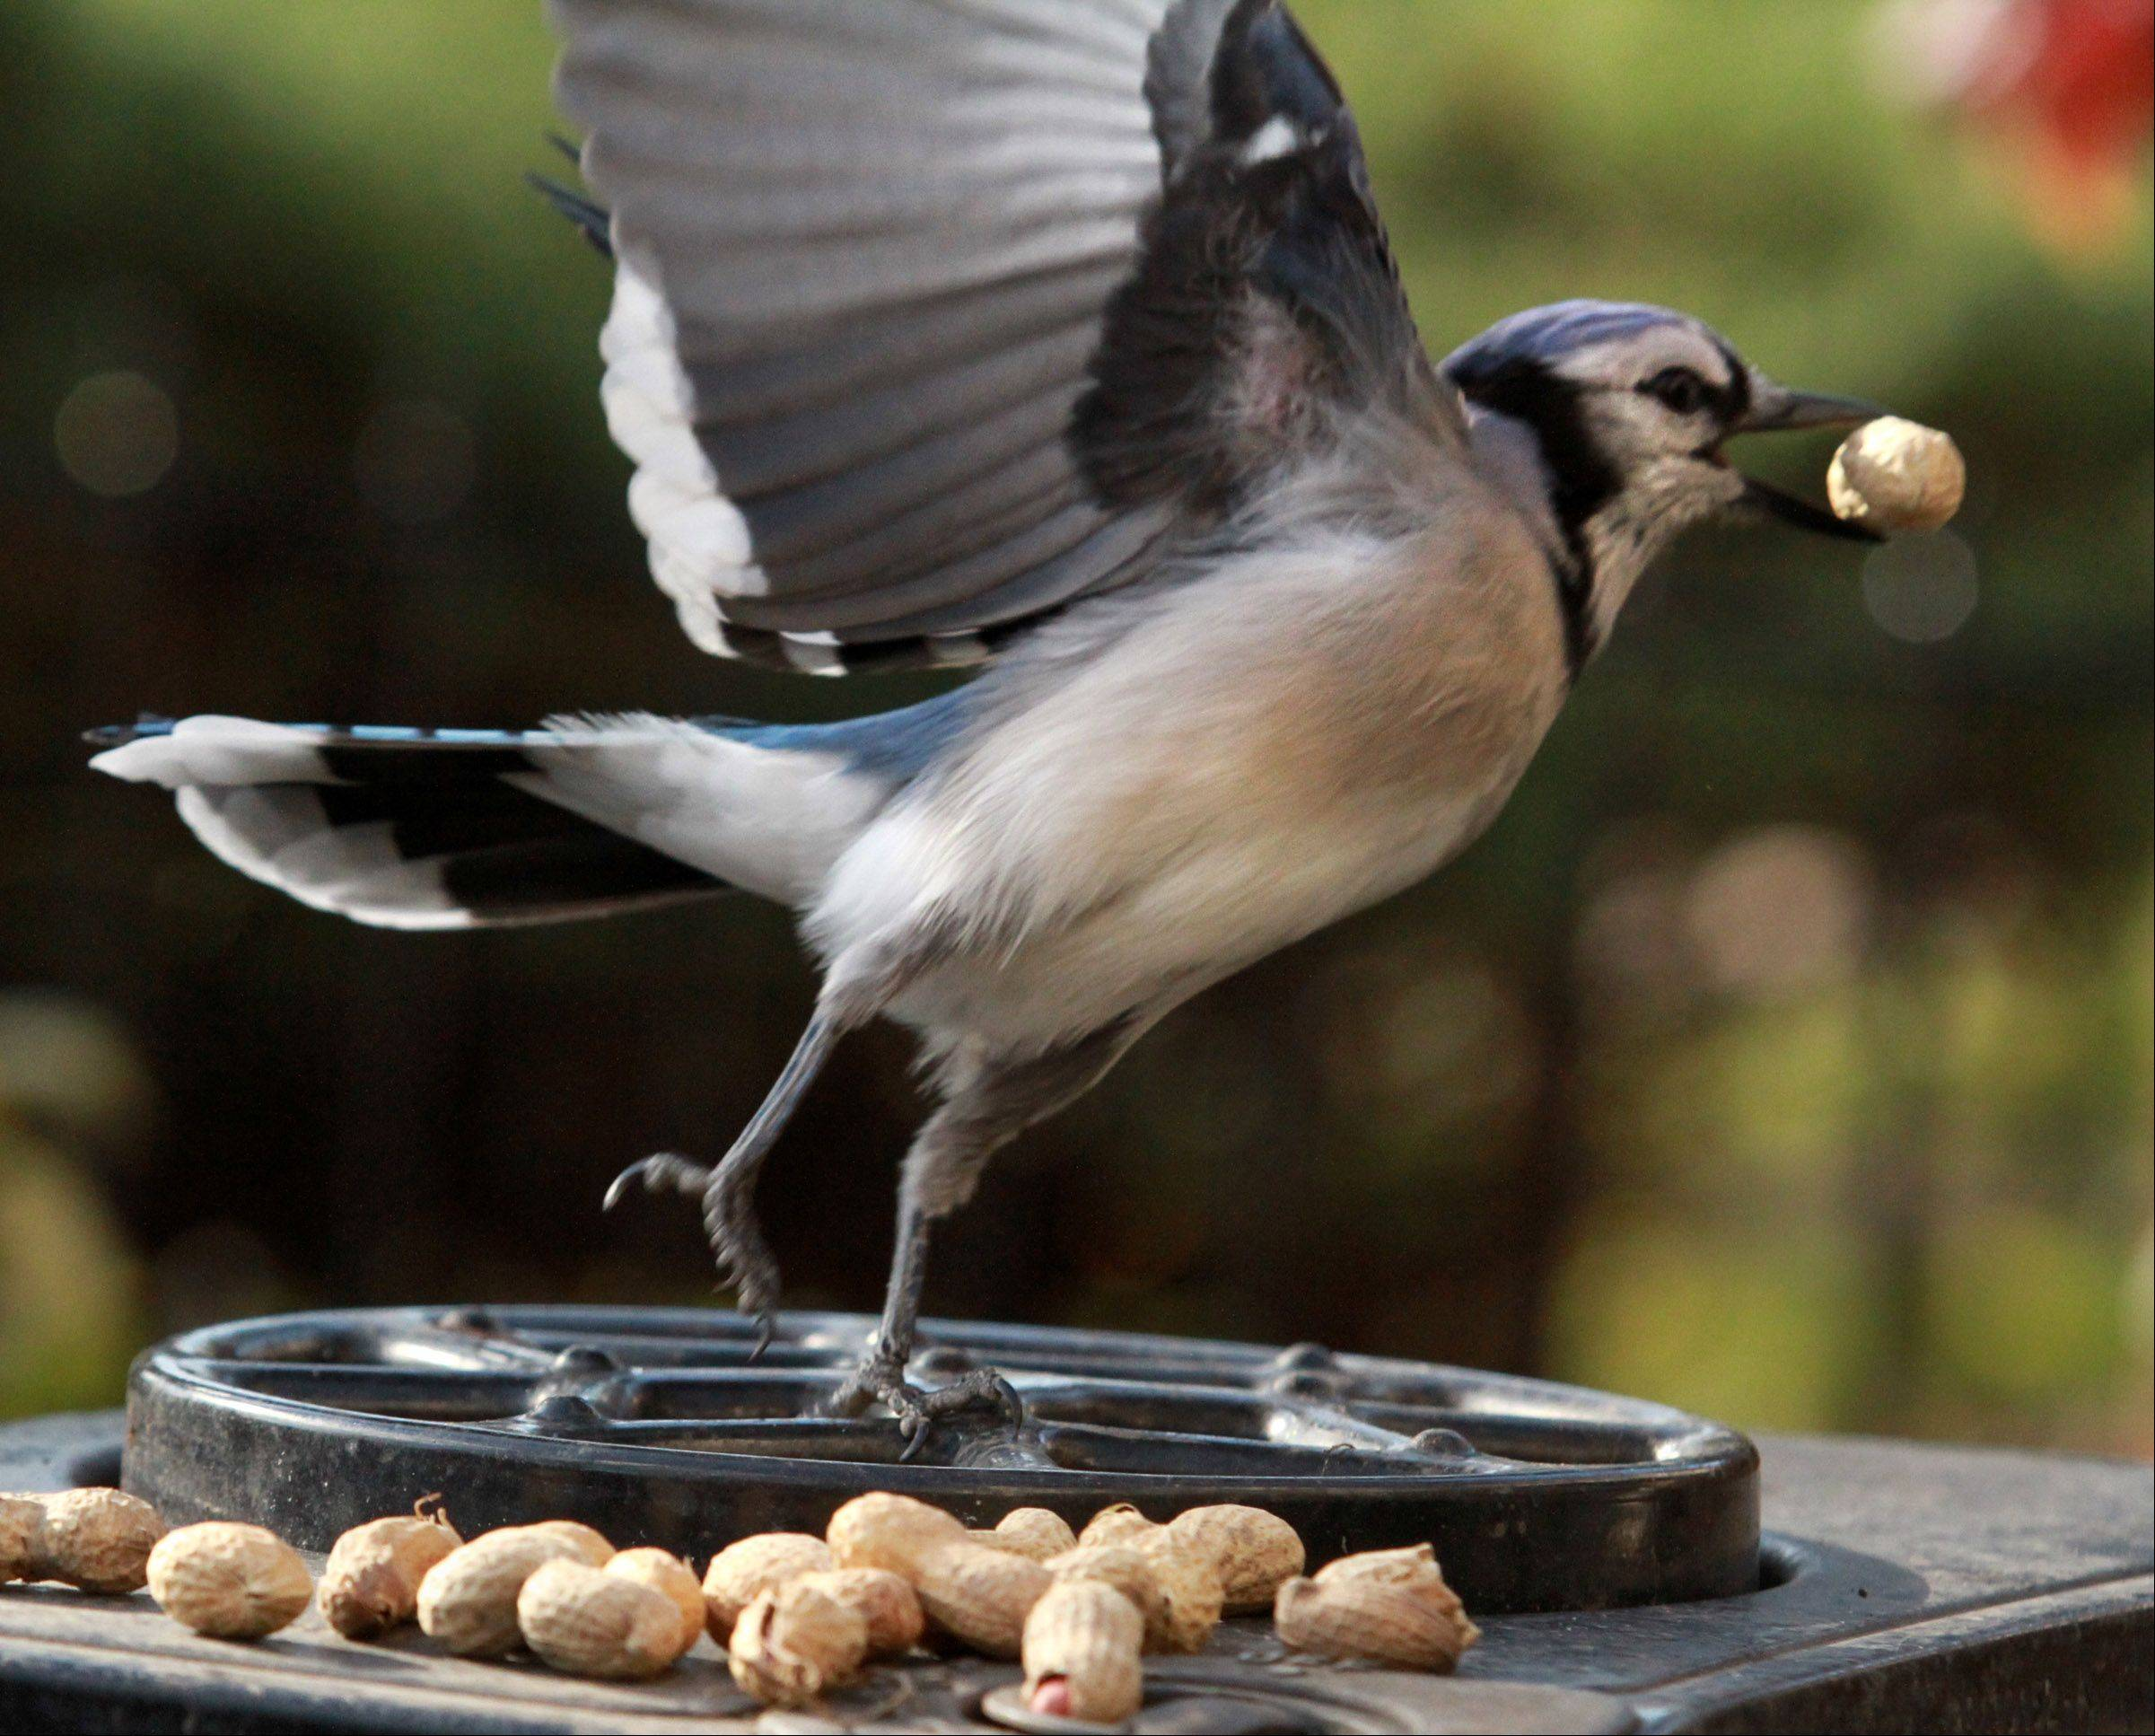 An 11-inch-long blue jay with a wingspan of about 16 inches grabbed 20 peanuts, one at time, in 45 minutes off the top of a grill Nov. 12 in Glenview.